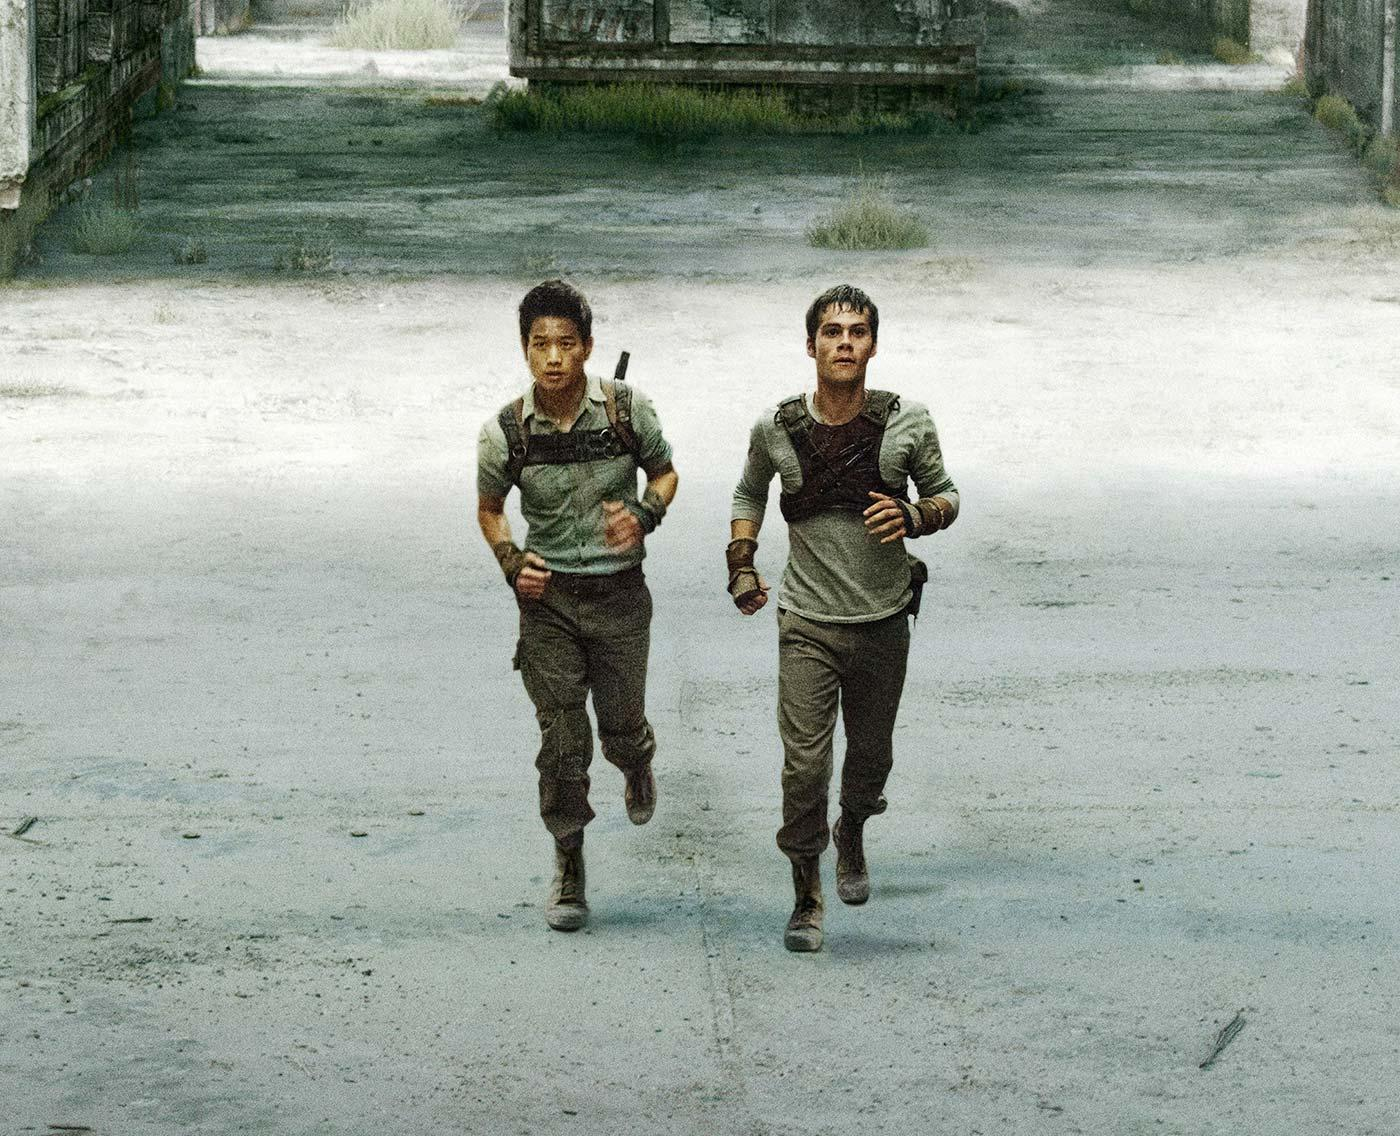 a scene from the Maze Runner